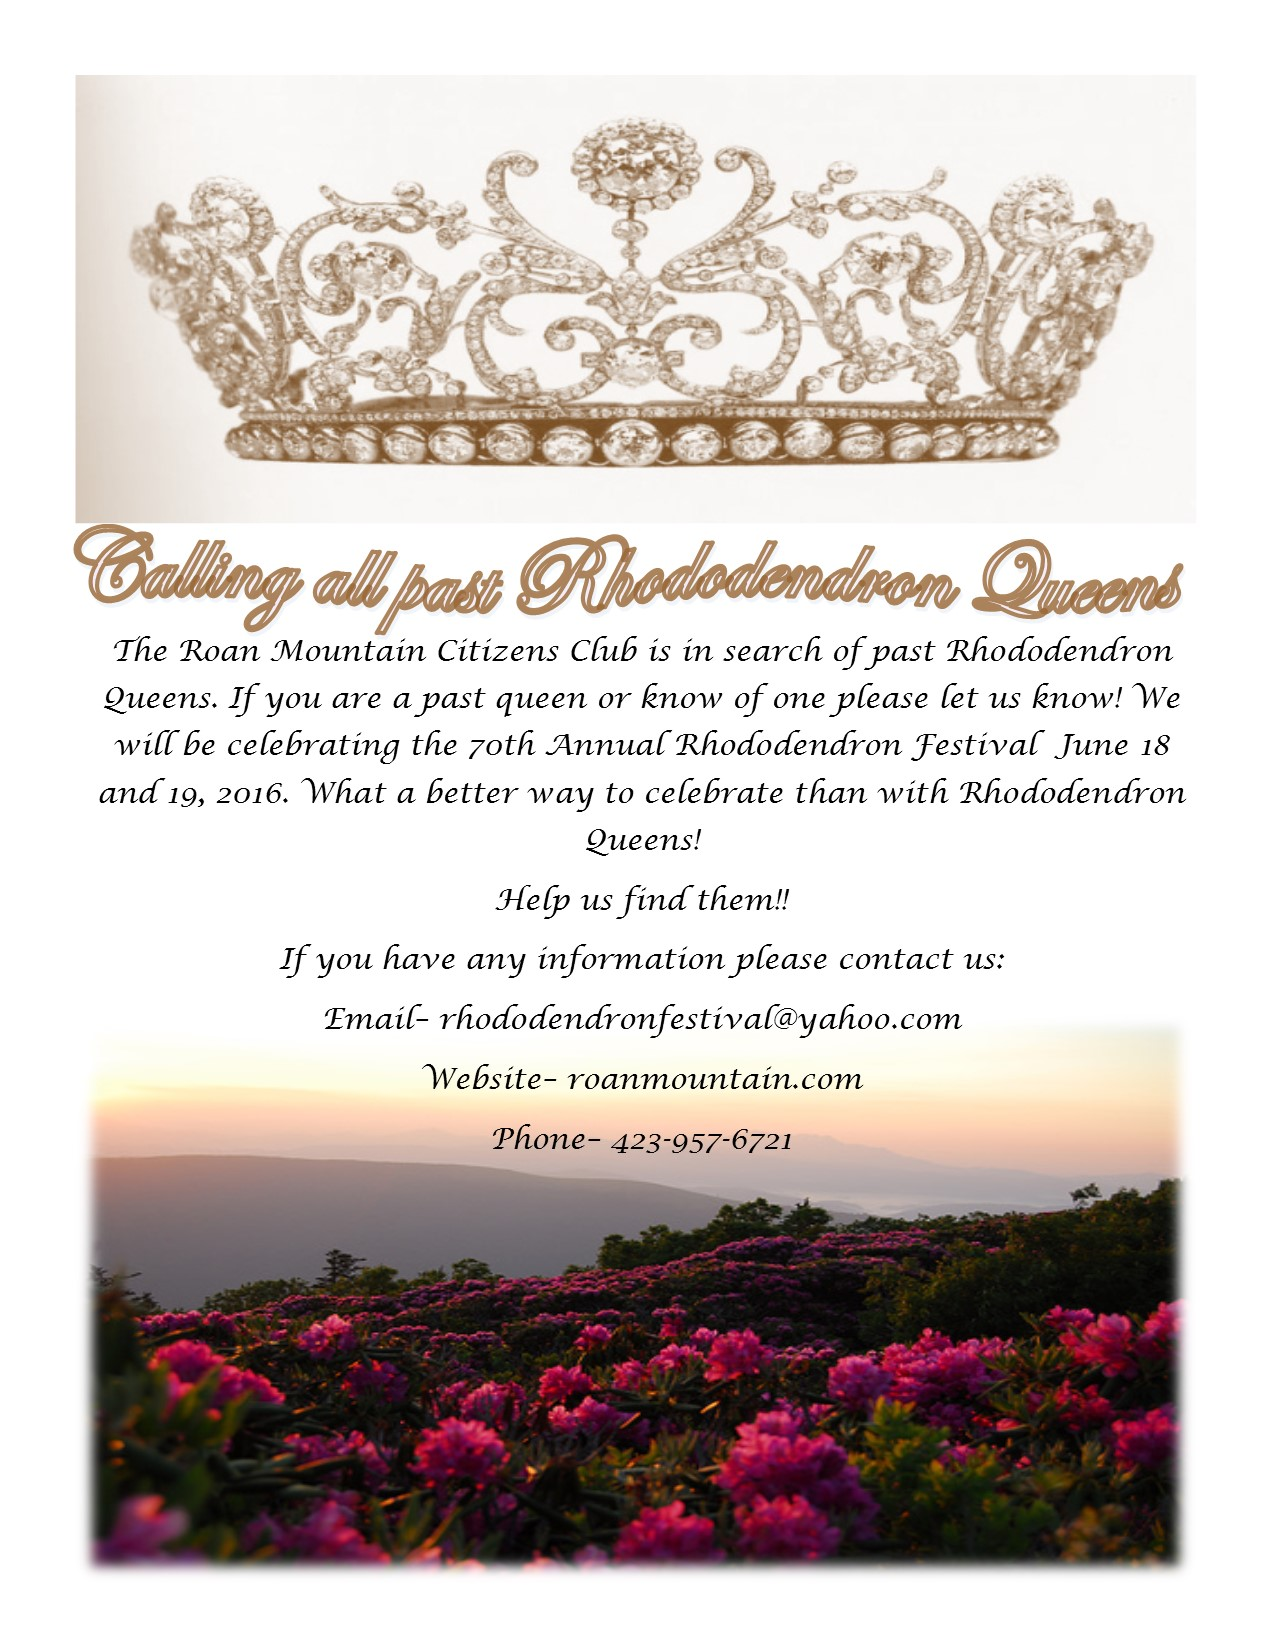 The Roan Mountain Citizens Club is in search of past Rhododendron Queens. If you are a past queen or know of one please let us know! We  will be celebrating the 70th Annual Rhododendron Festival  June 18 and 19, 2016. What a better way to celebrate than with Rhododendron Queens!